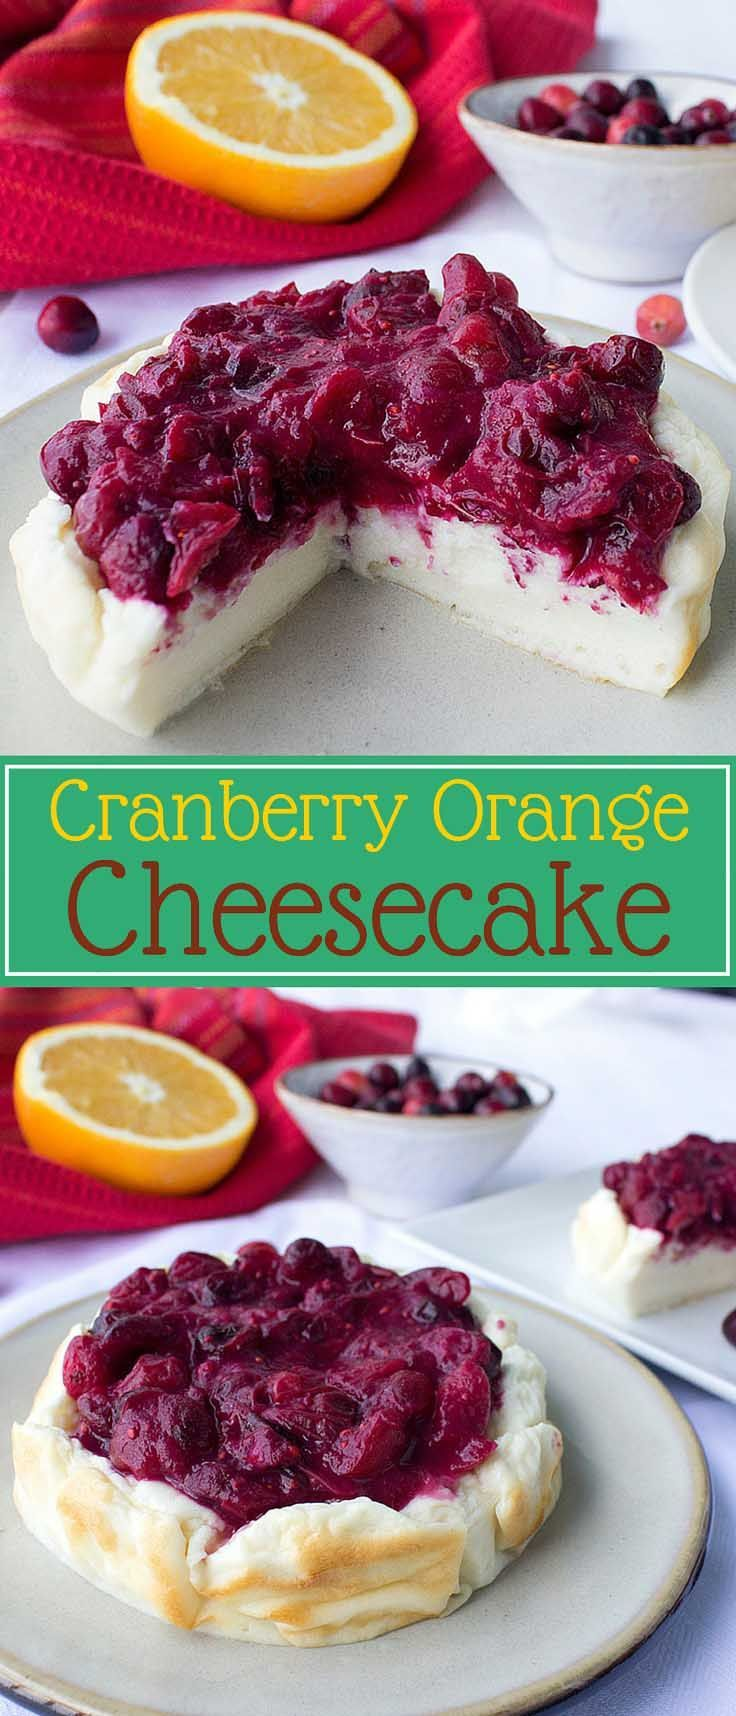 Healthy Cranberry Orange Cheesecake – This cheesecake is pure protein and the topping of cranberry and orange just screams holidays │ TheFitBlog.com